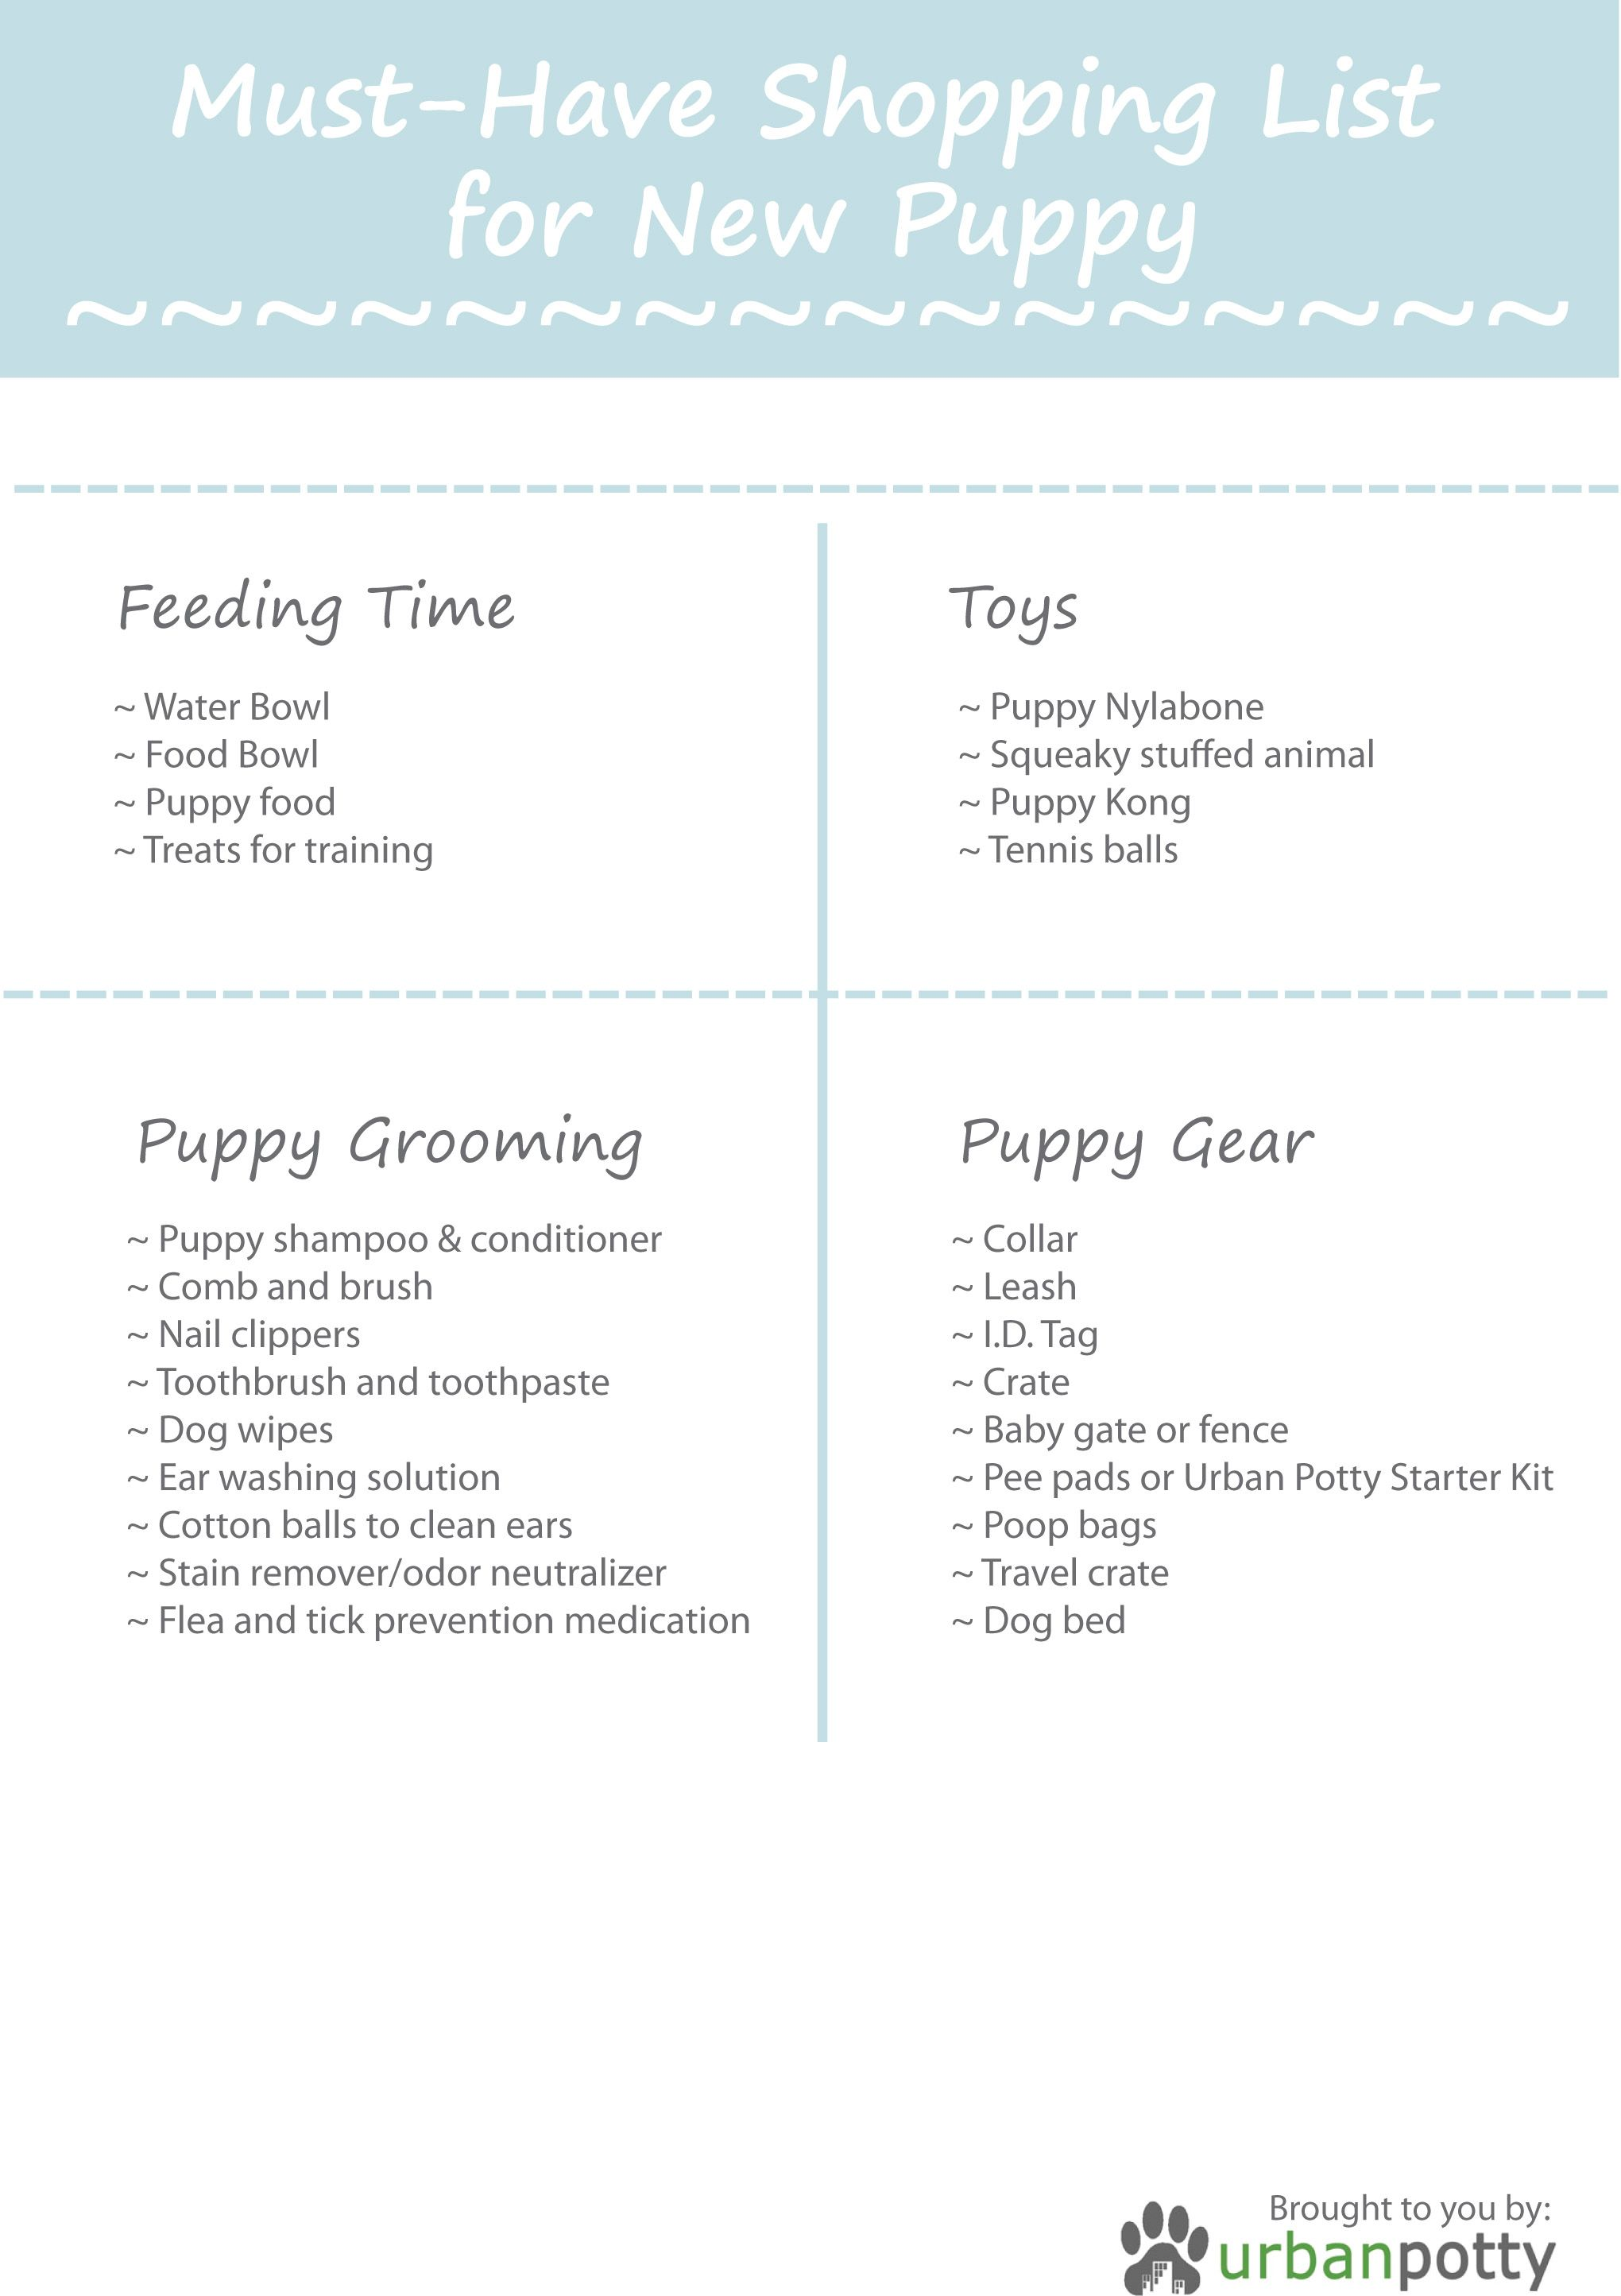 new puppy checklist printable   puppy download a printable pdf of the puppy shopping list here